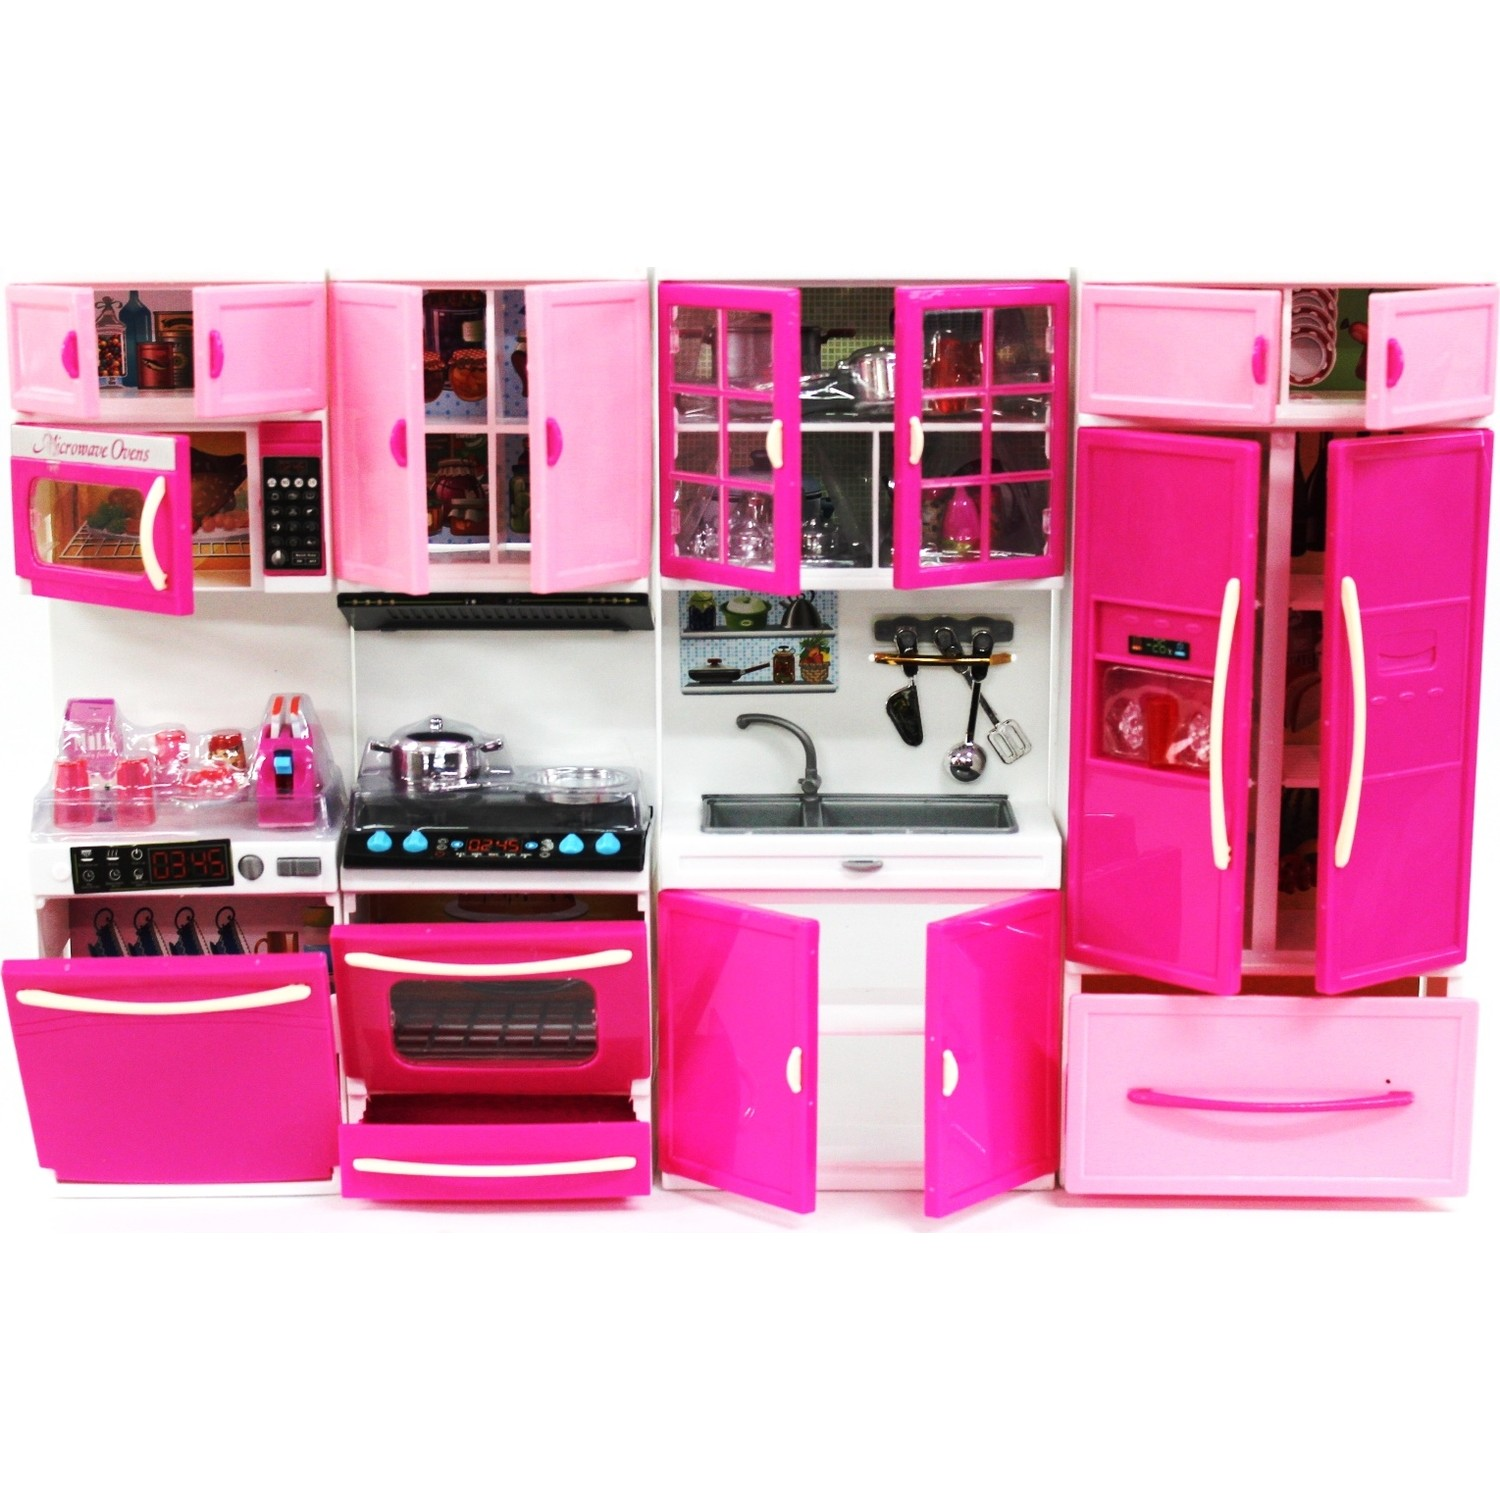 Kitchen Toys Girl Gift Child Playset 4 in 1 Set Montessori Kids Doll House Cooking Cabinet Hello Kitty Barbie House Accessories